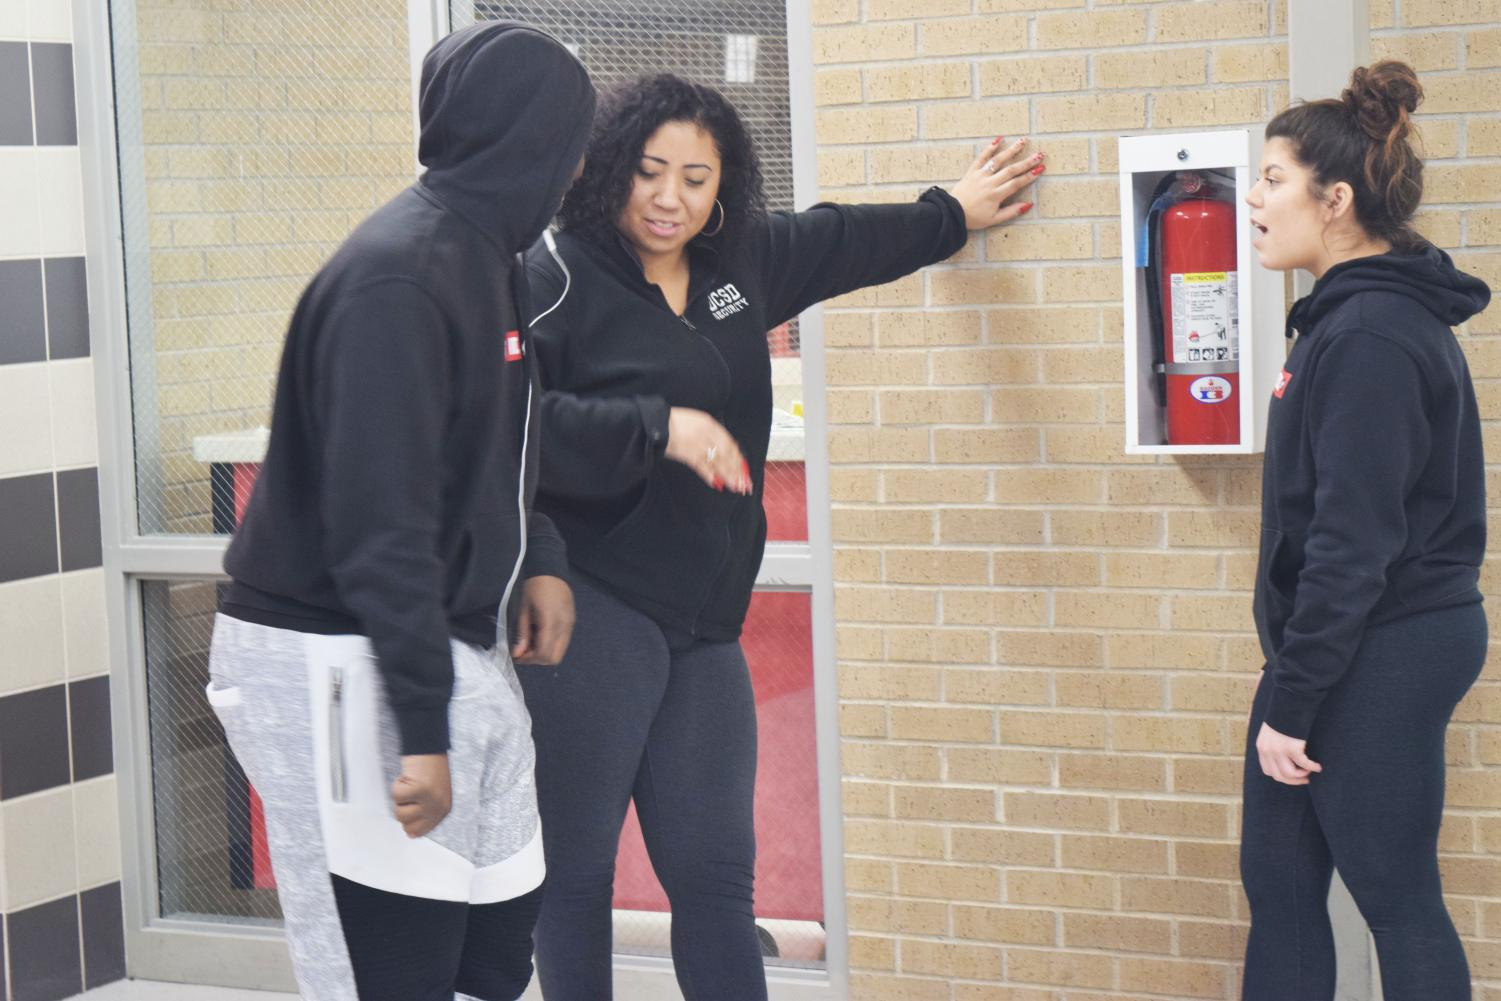 Security professional Shay Serrano talks to two students at West about their daily conflicts with some of the teachers. Serrano allows students to come to her whenever they need advice with anything or if they just want to talk about their day.